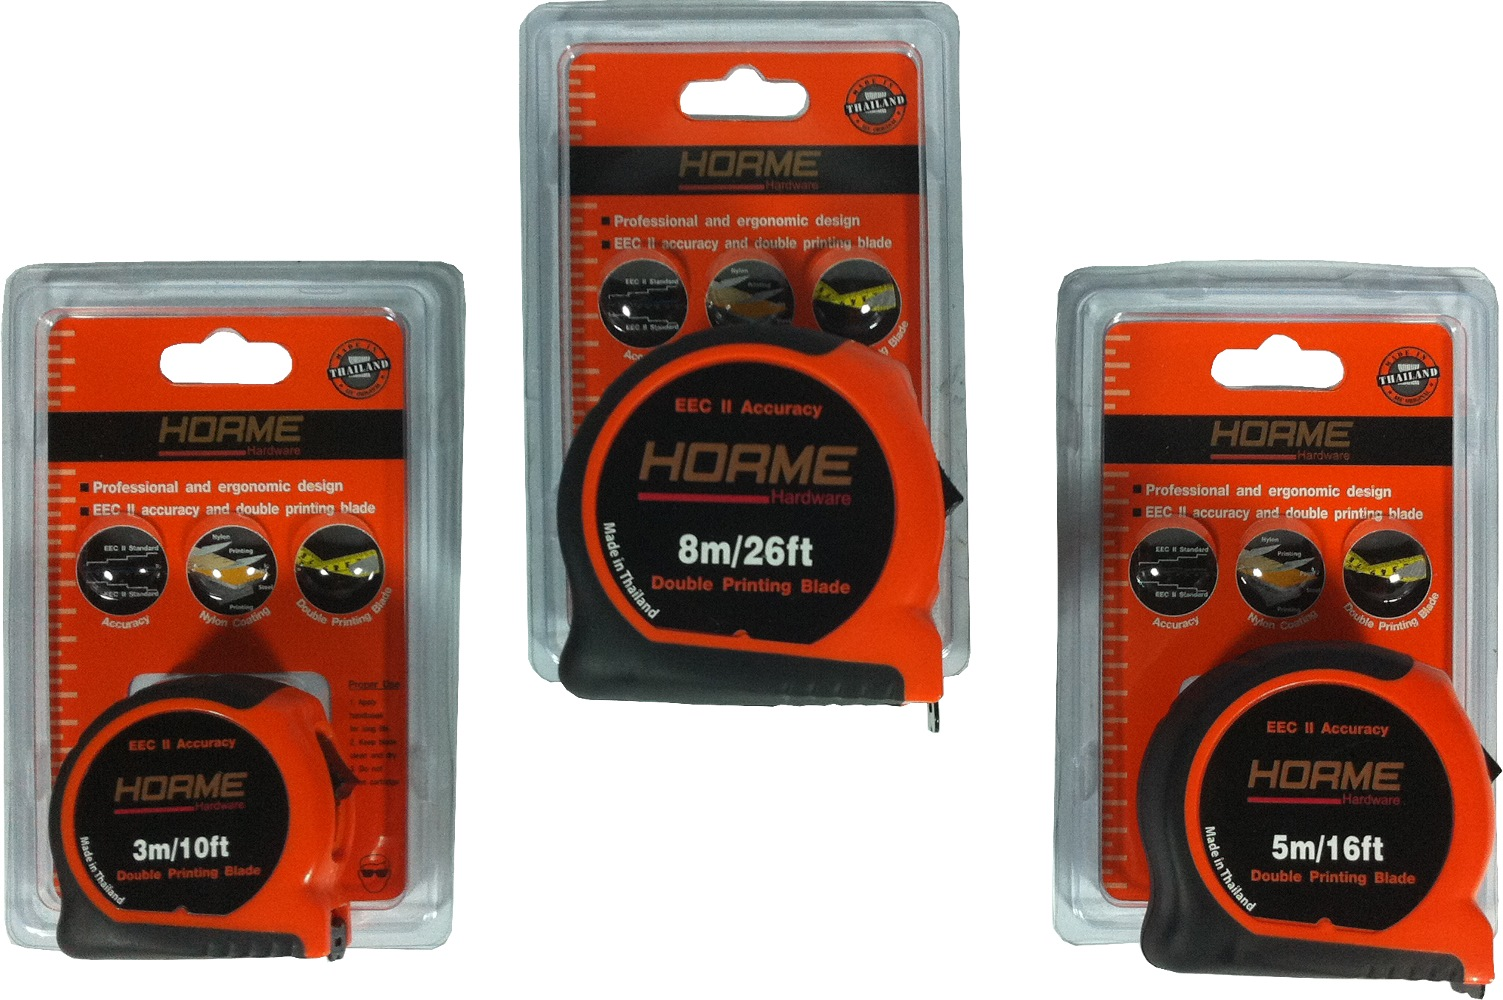 Horme Pro Measuring Tape